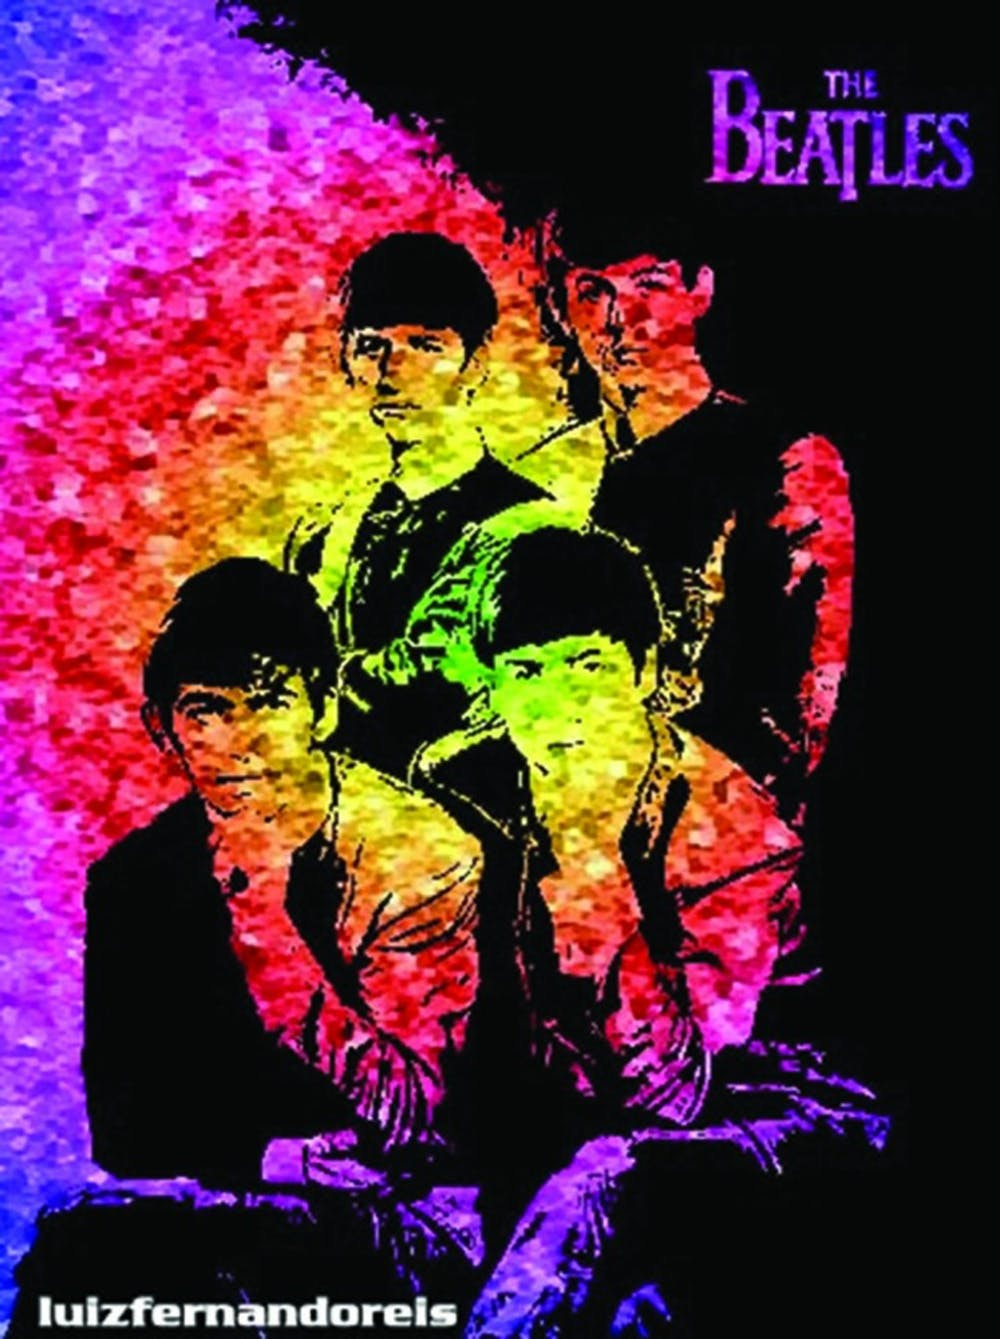 The Beatles: A revolution they created